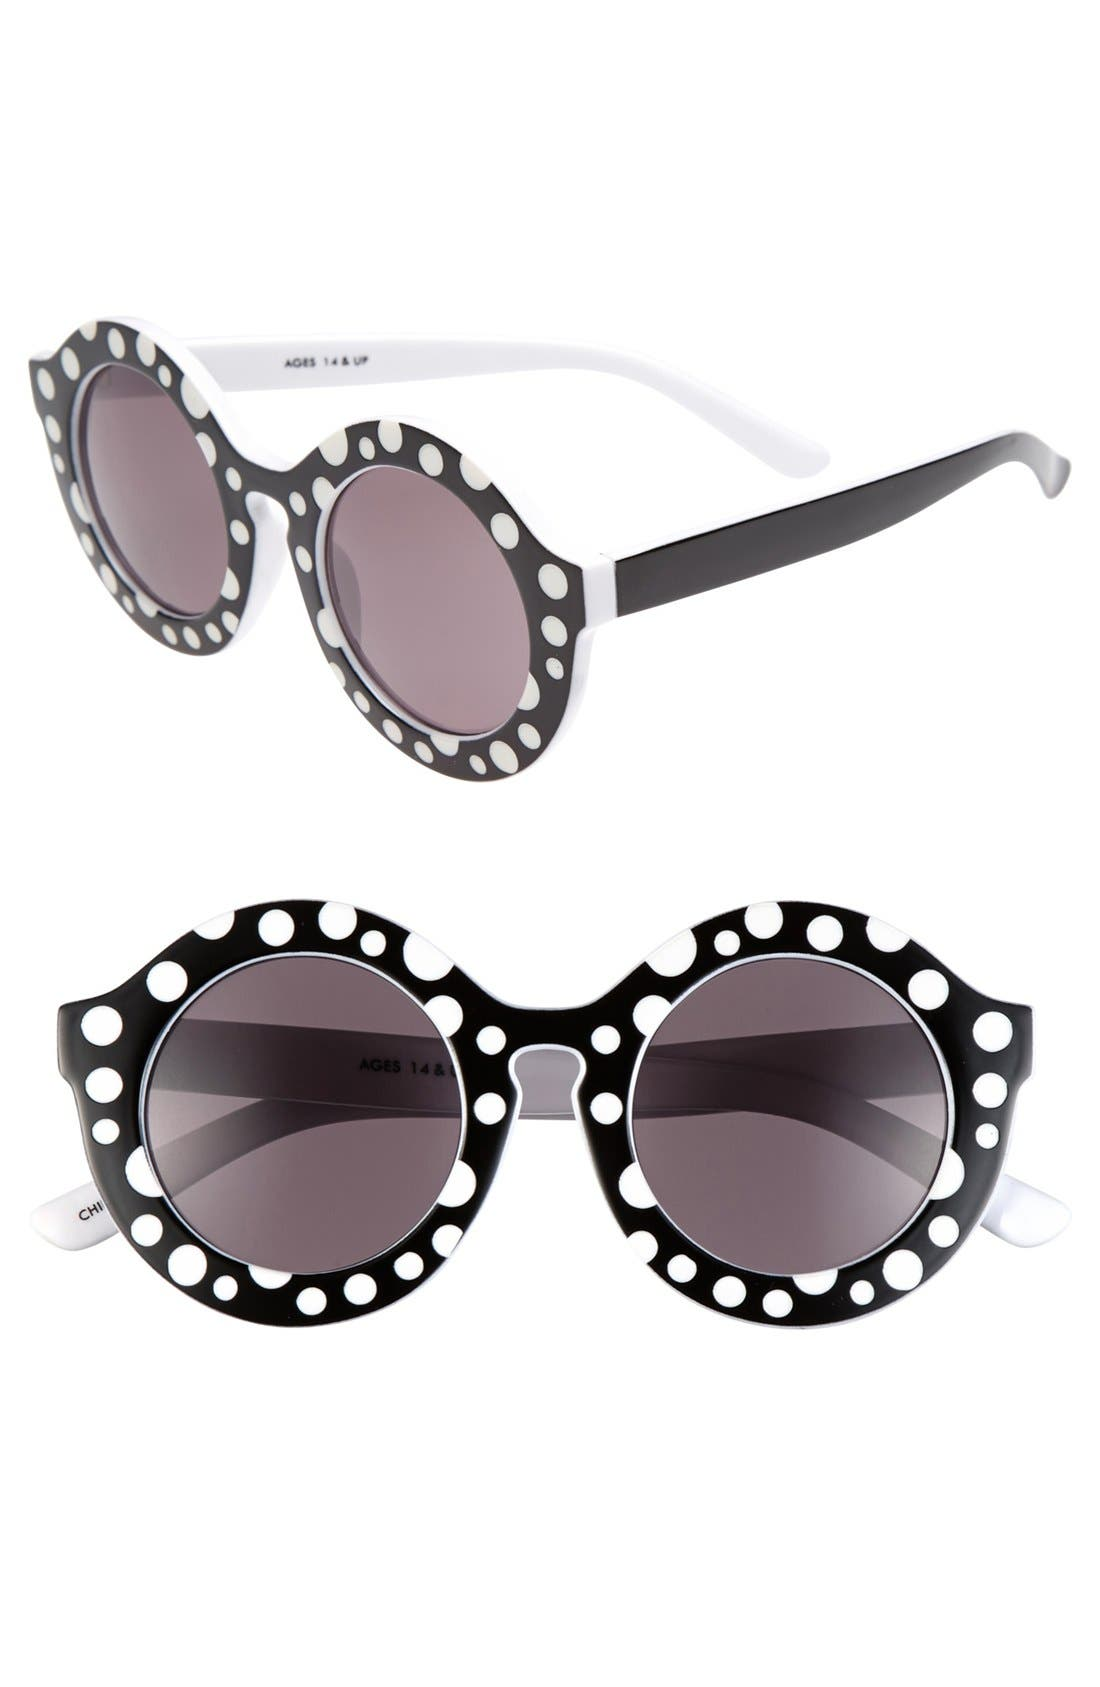 Main Image - FE NY 'Blizzard' 46mm Sunglasses